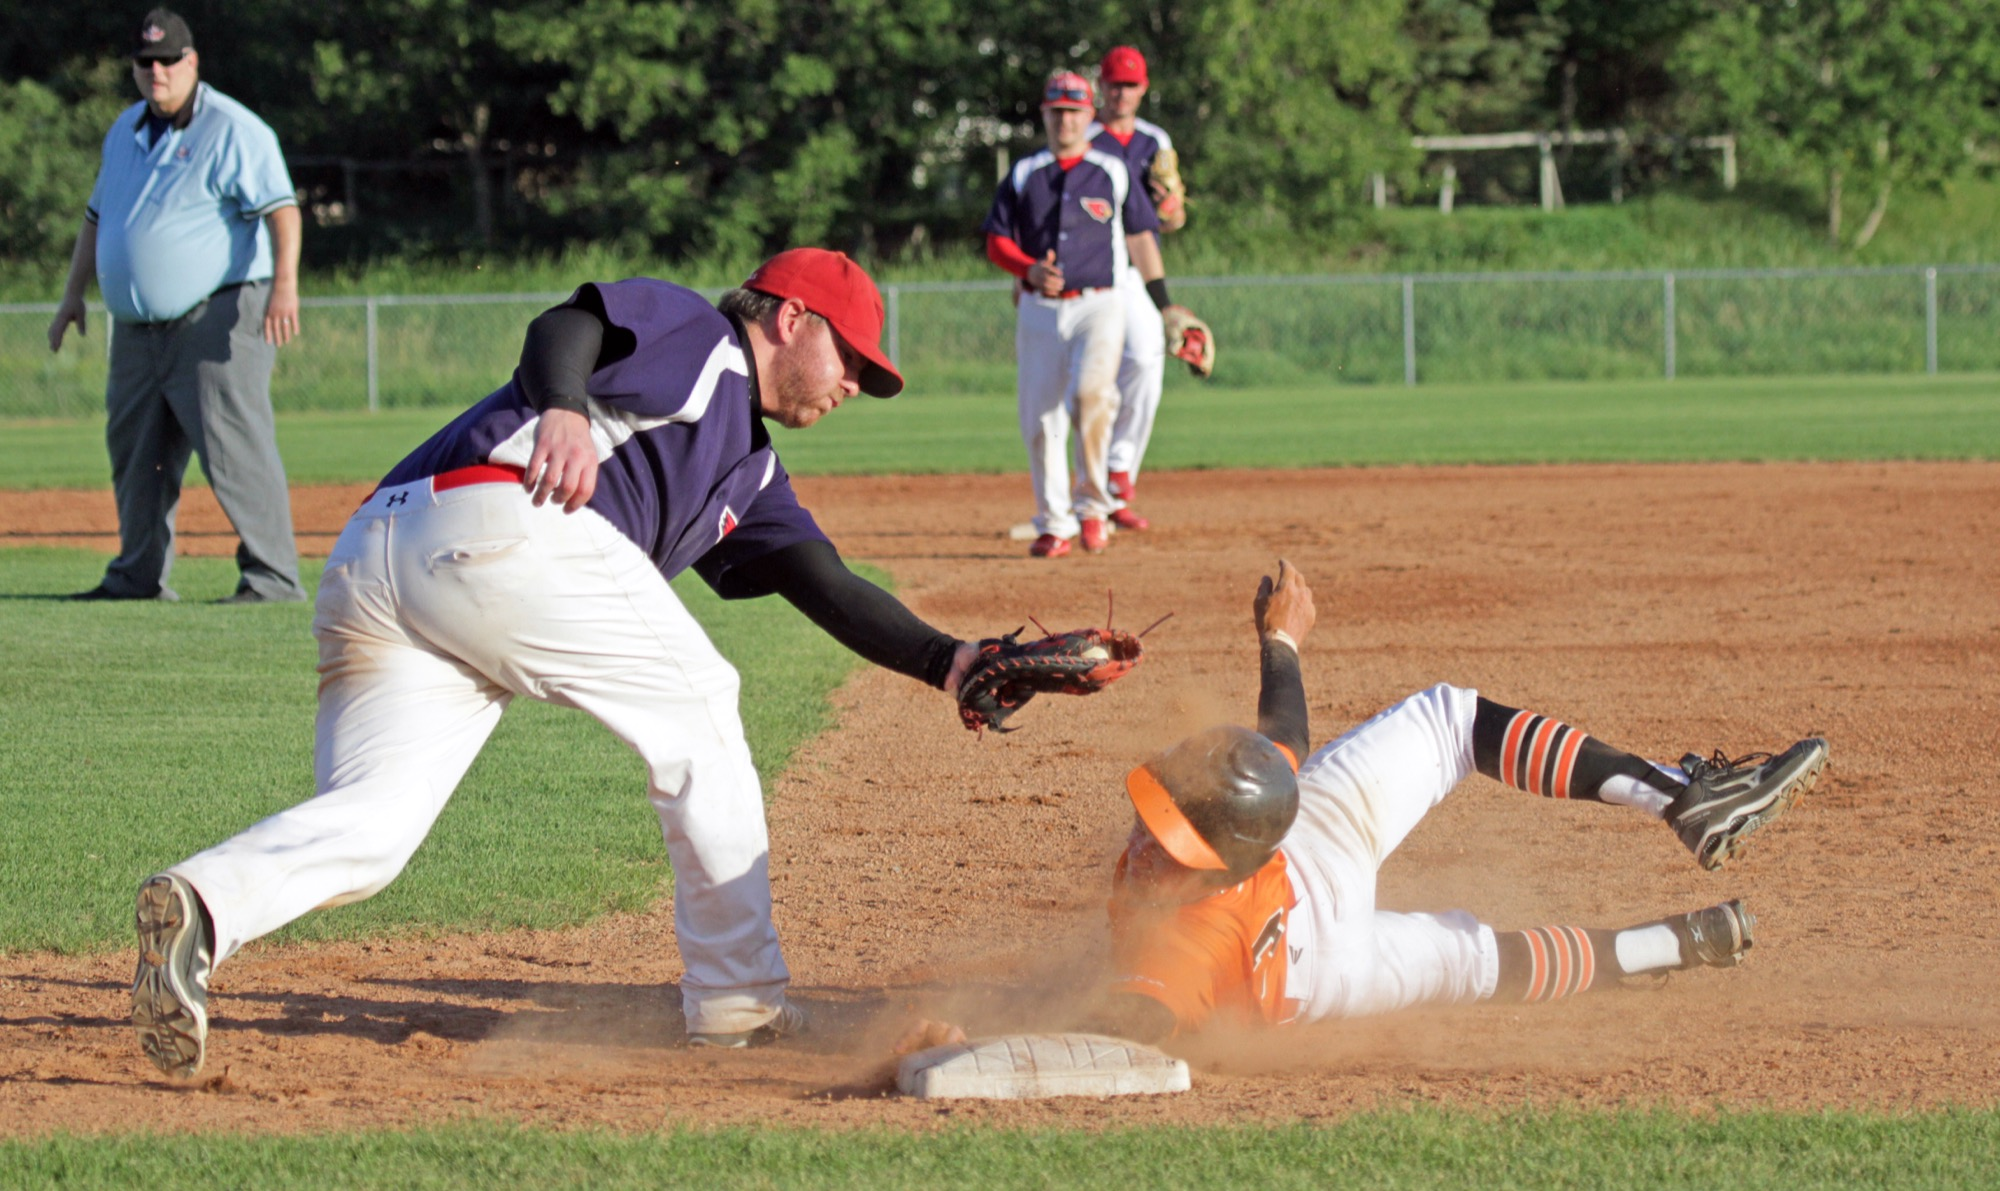 RFNOW Cardinals first baseman Joel Krentz attempts to complete a double play, but Giants baserunner Ian Barr evades the tag during Game 1 of their Andrew Agencies Senior AA Baseball League semifinal at Sumner Field on Thursday.